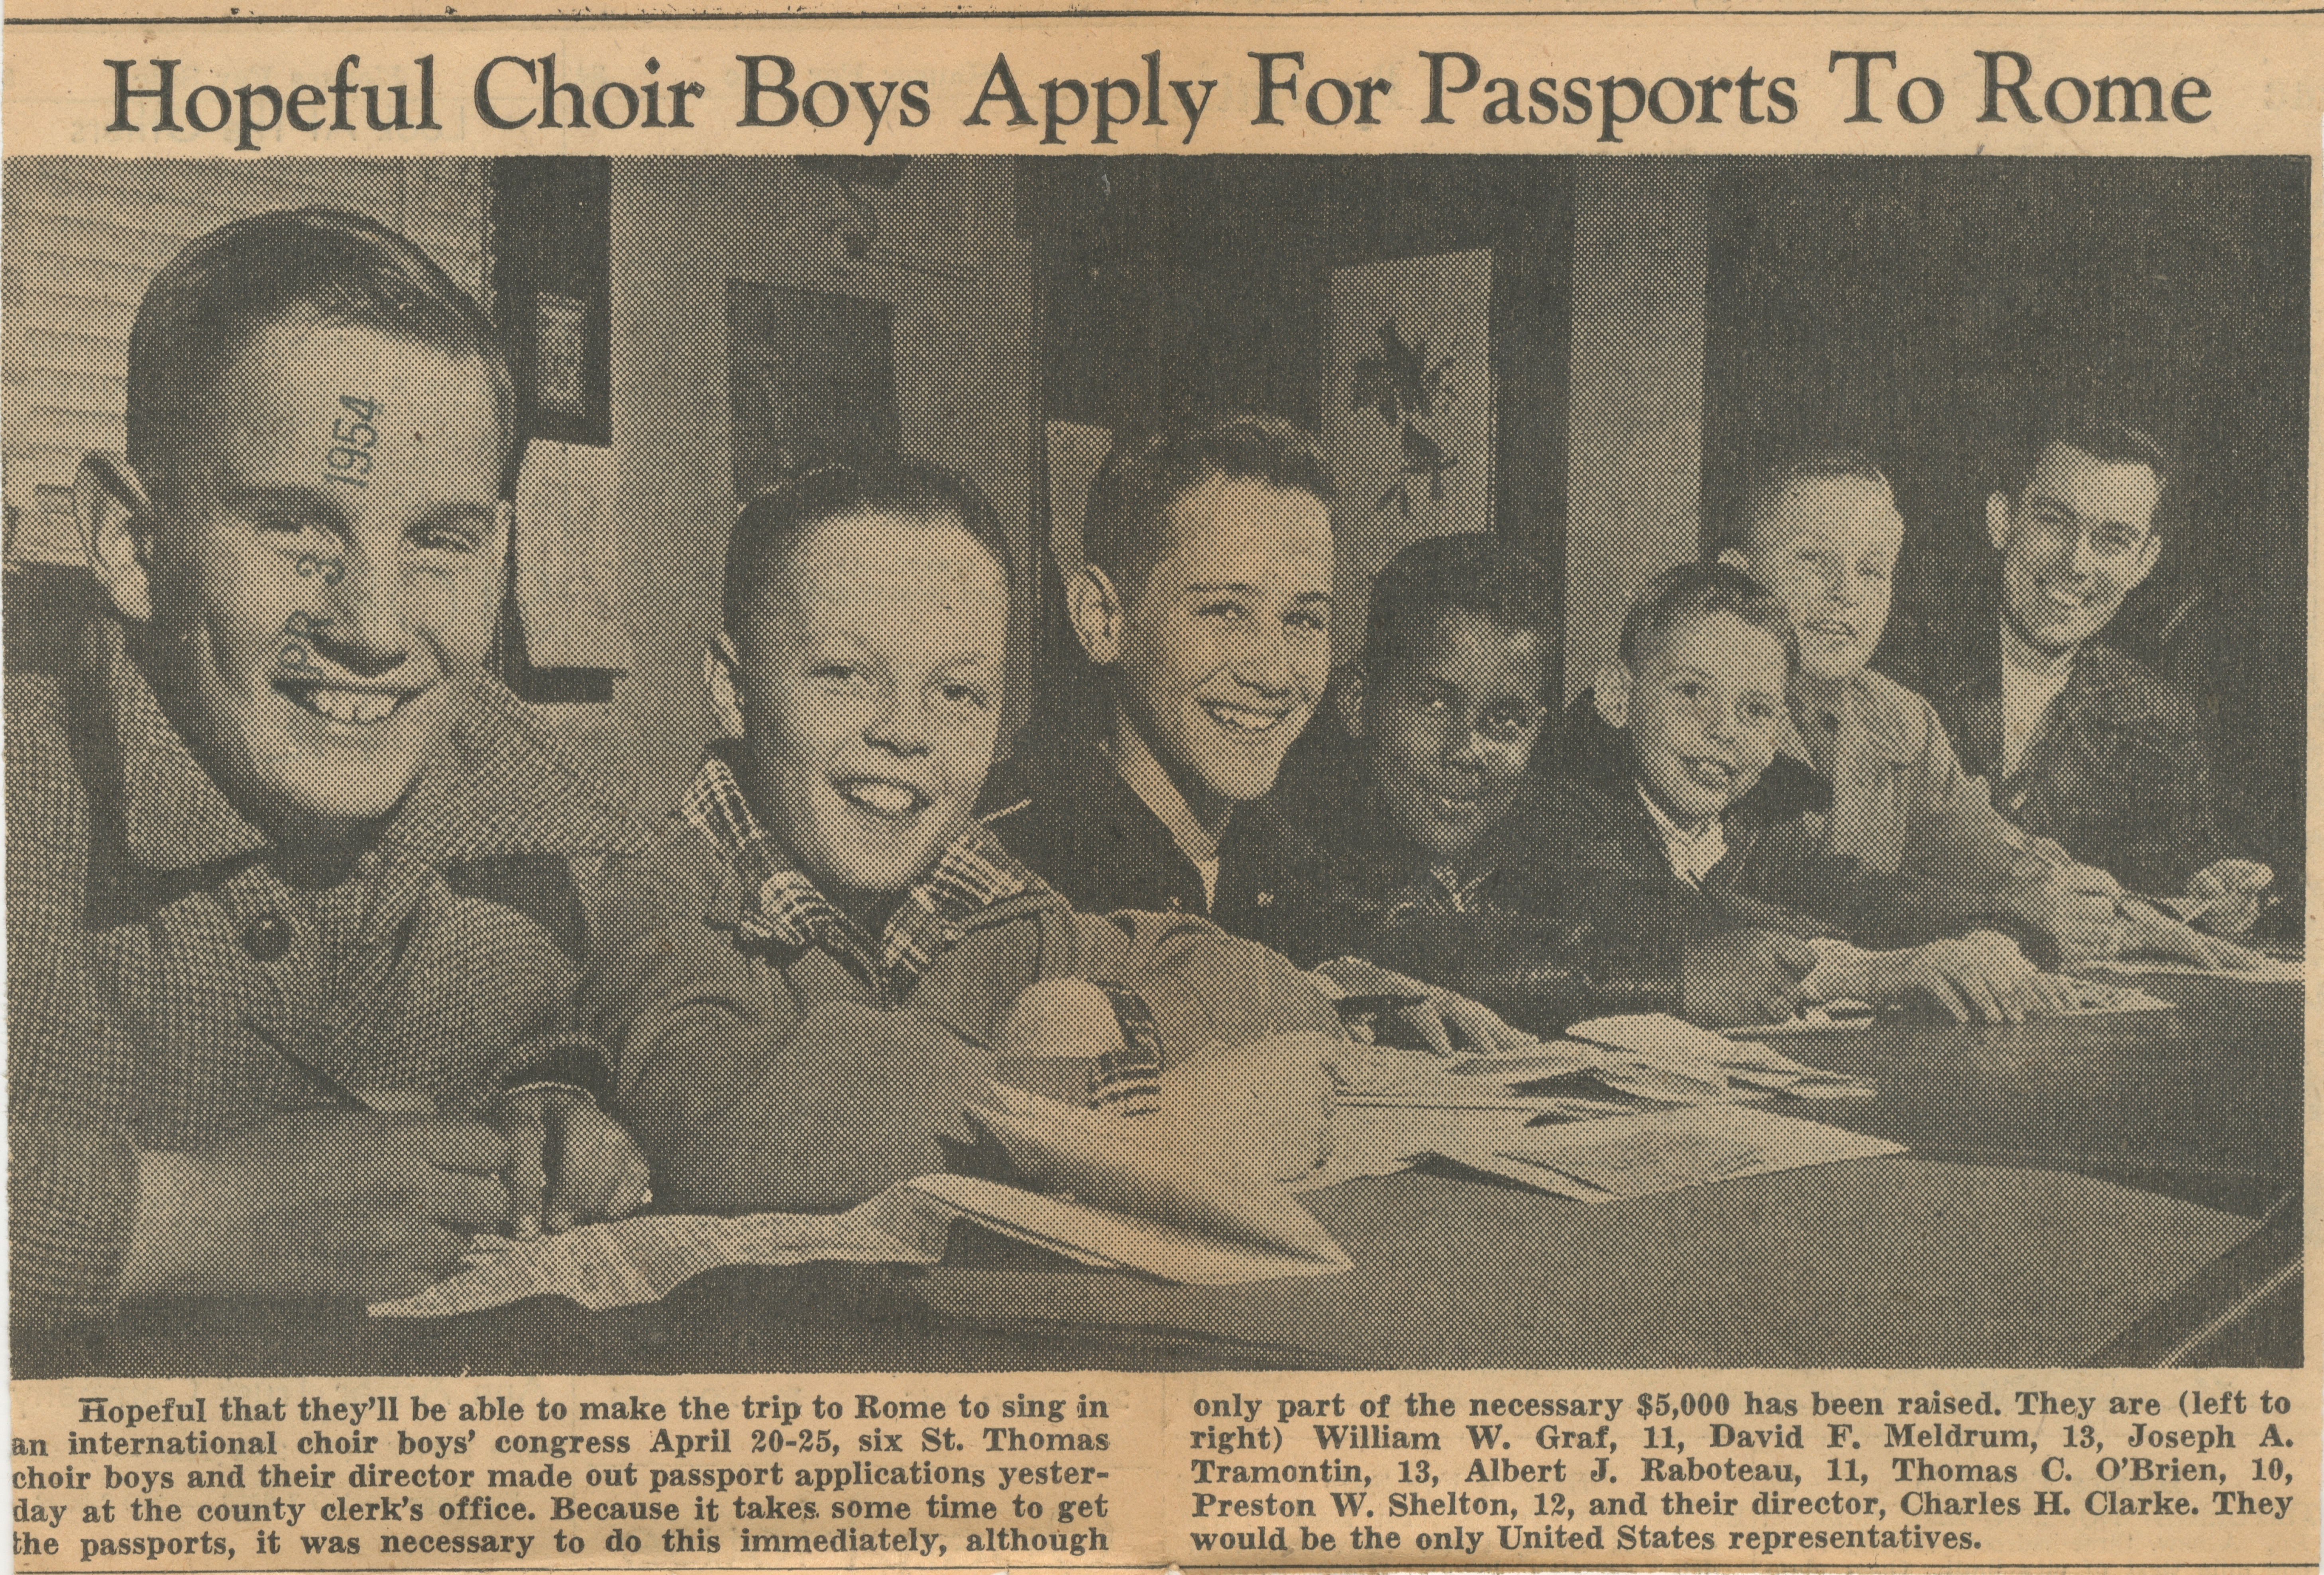 Hopeful Choir Boys Apply For Passports To Rome image